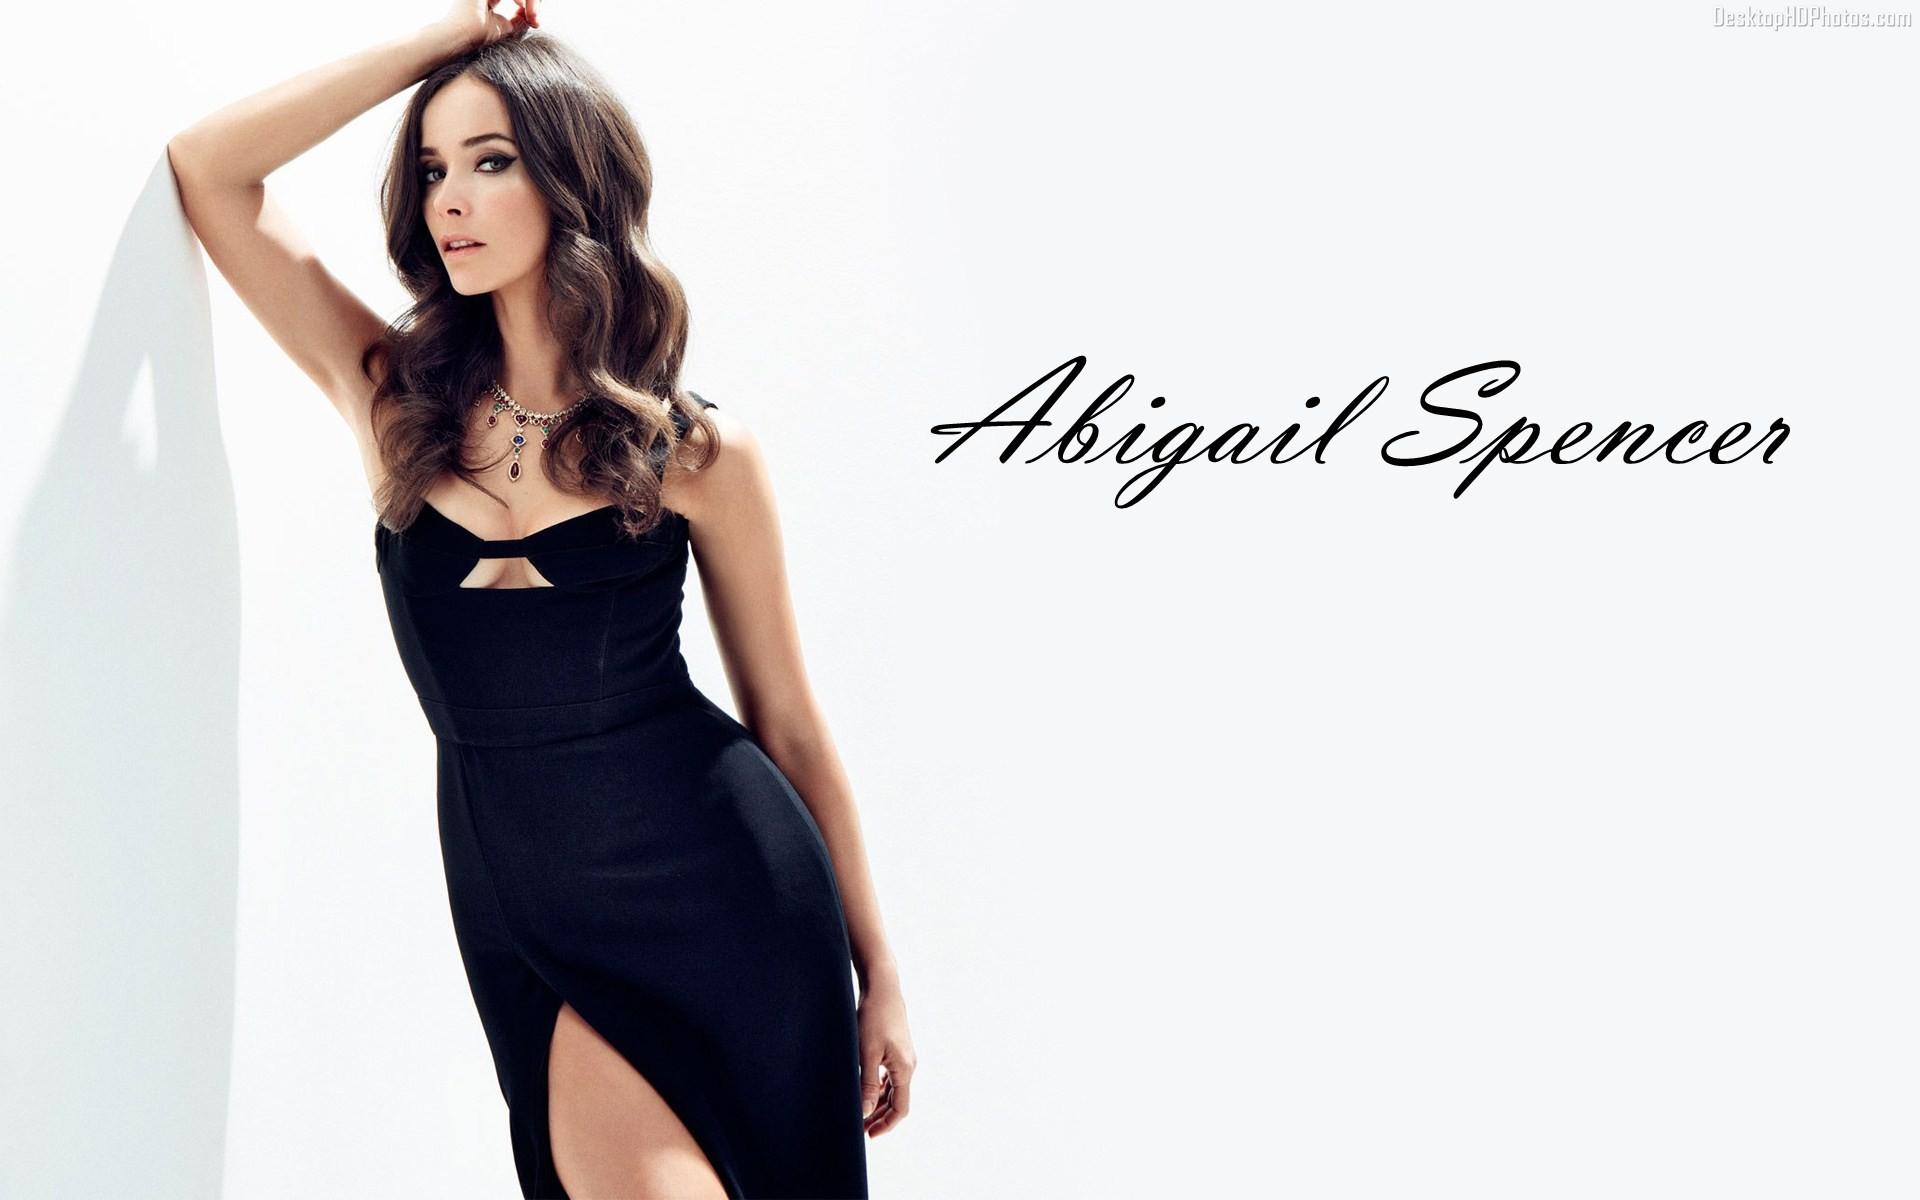 1920x1200 - Abigail Spencer Wallpapers 4